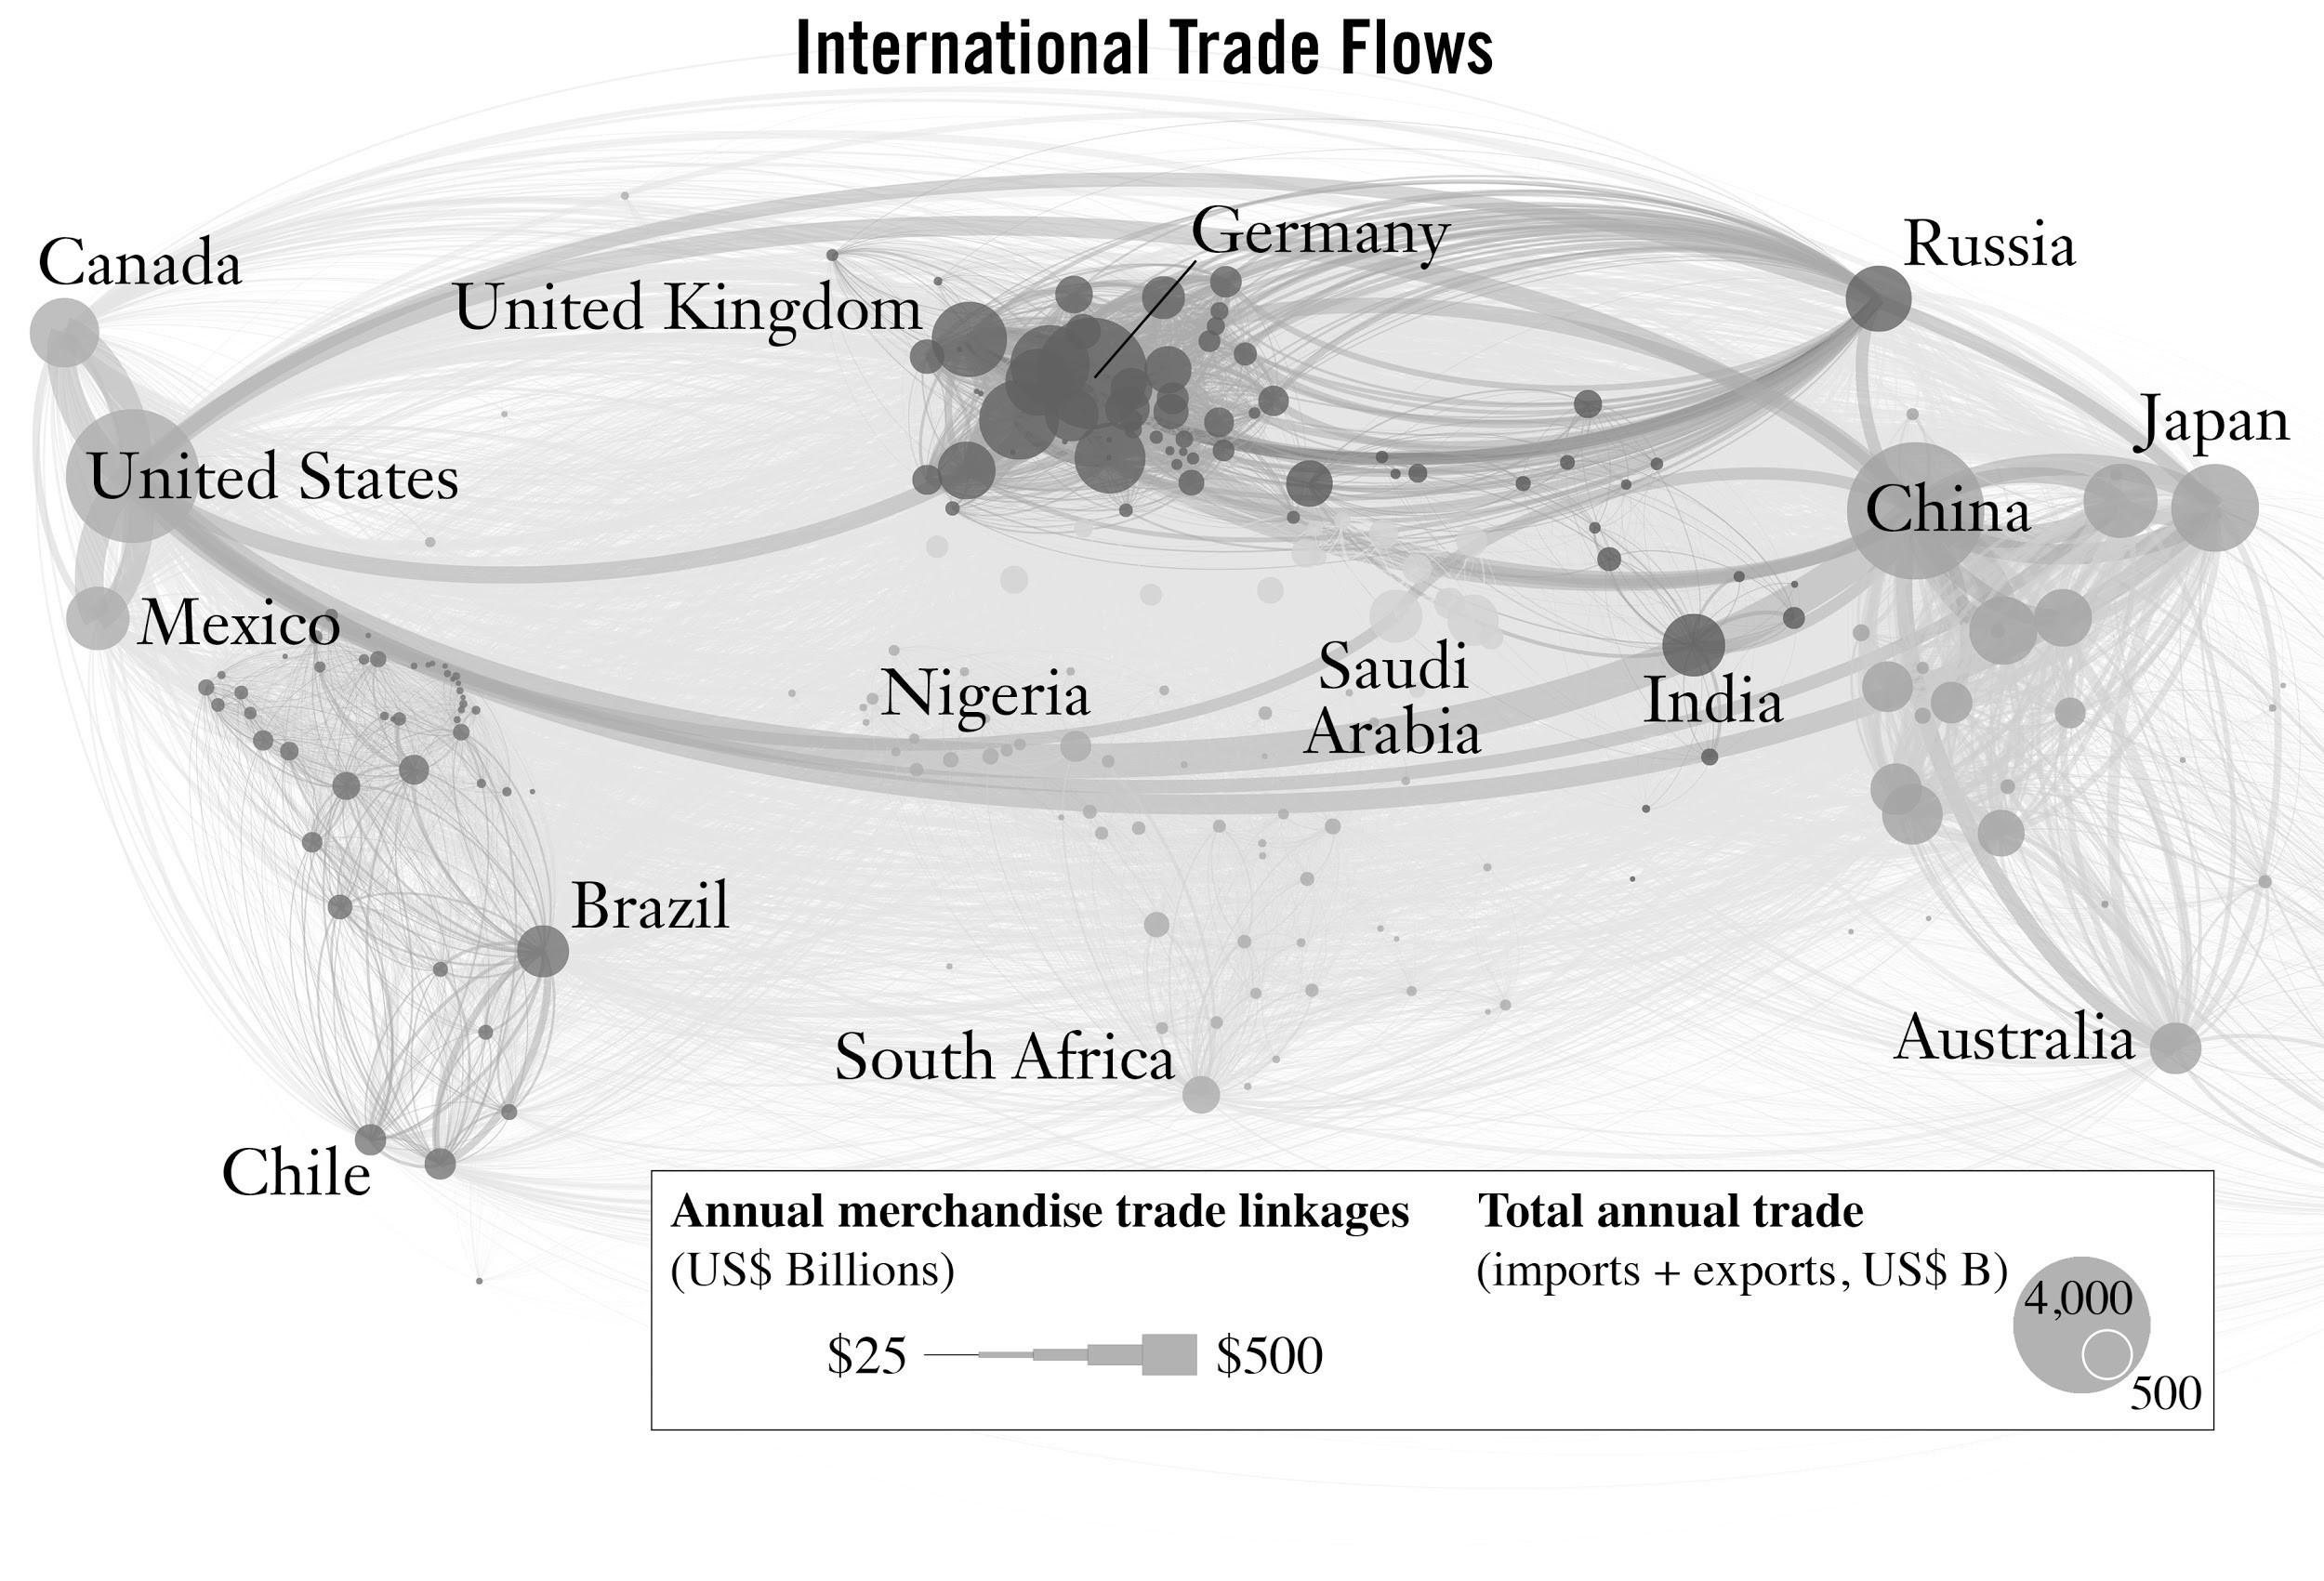 International trade flows